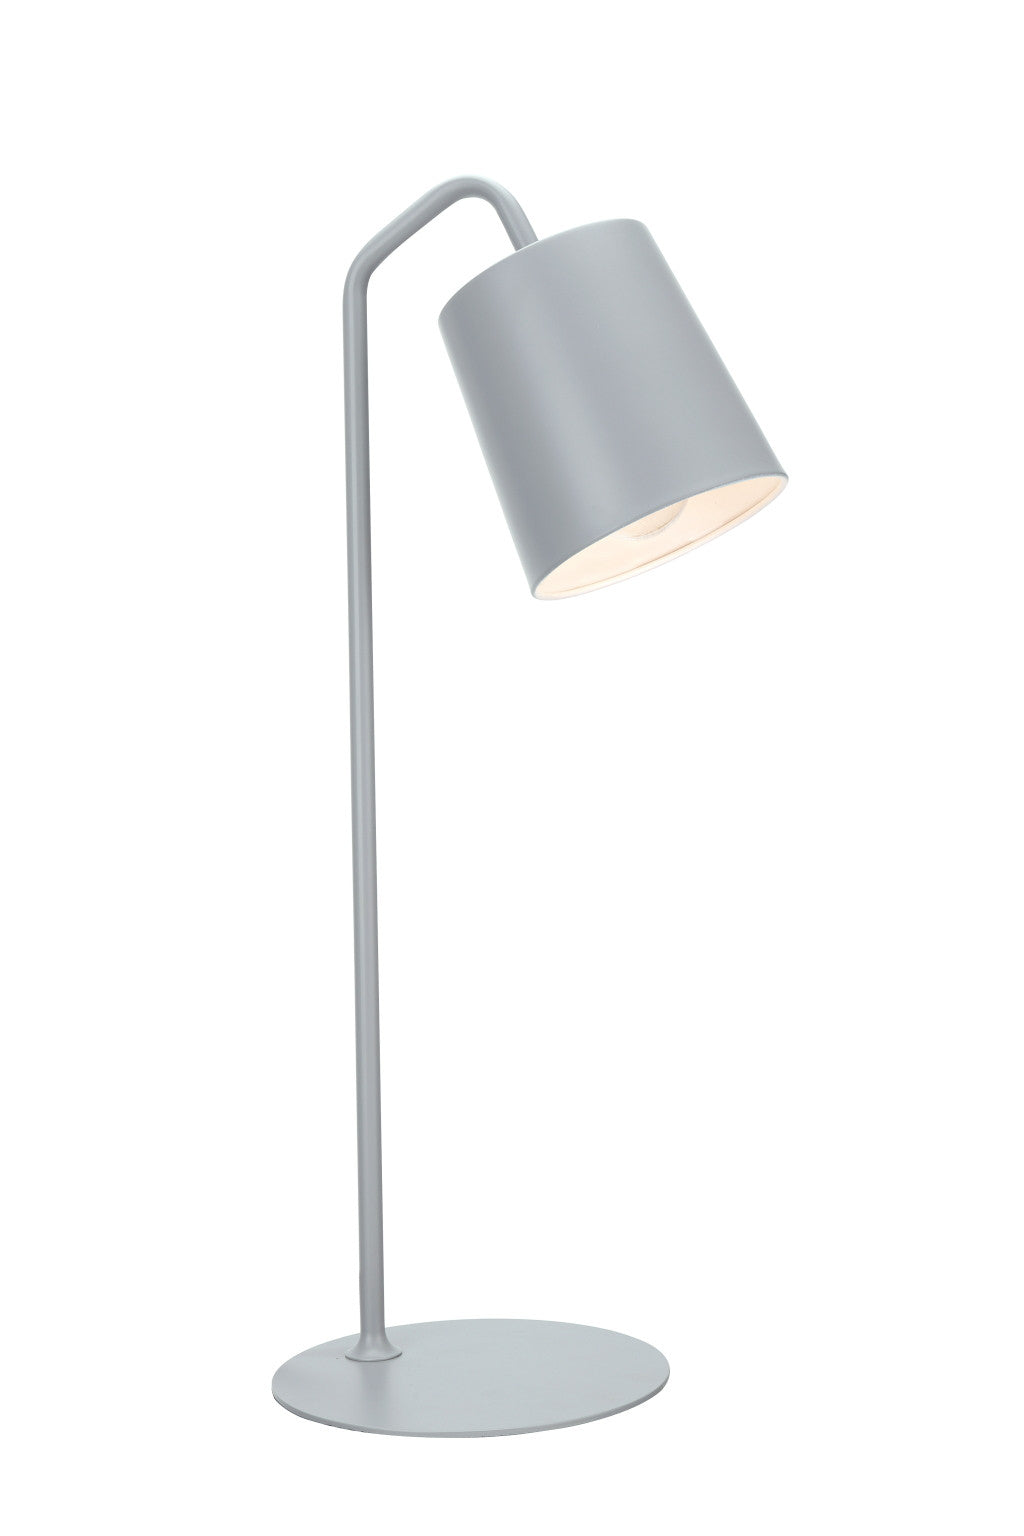 40100 3 23 High Modern Metal Desk Lamp Milky Grey Finish With Met Aspen Creative Corporation